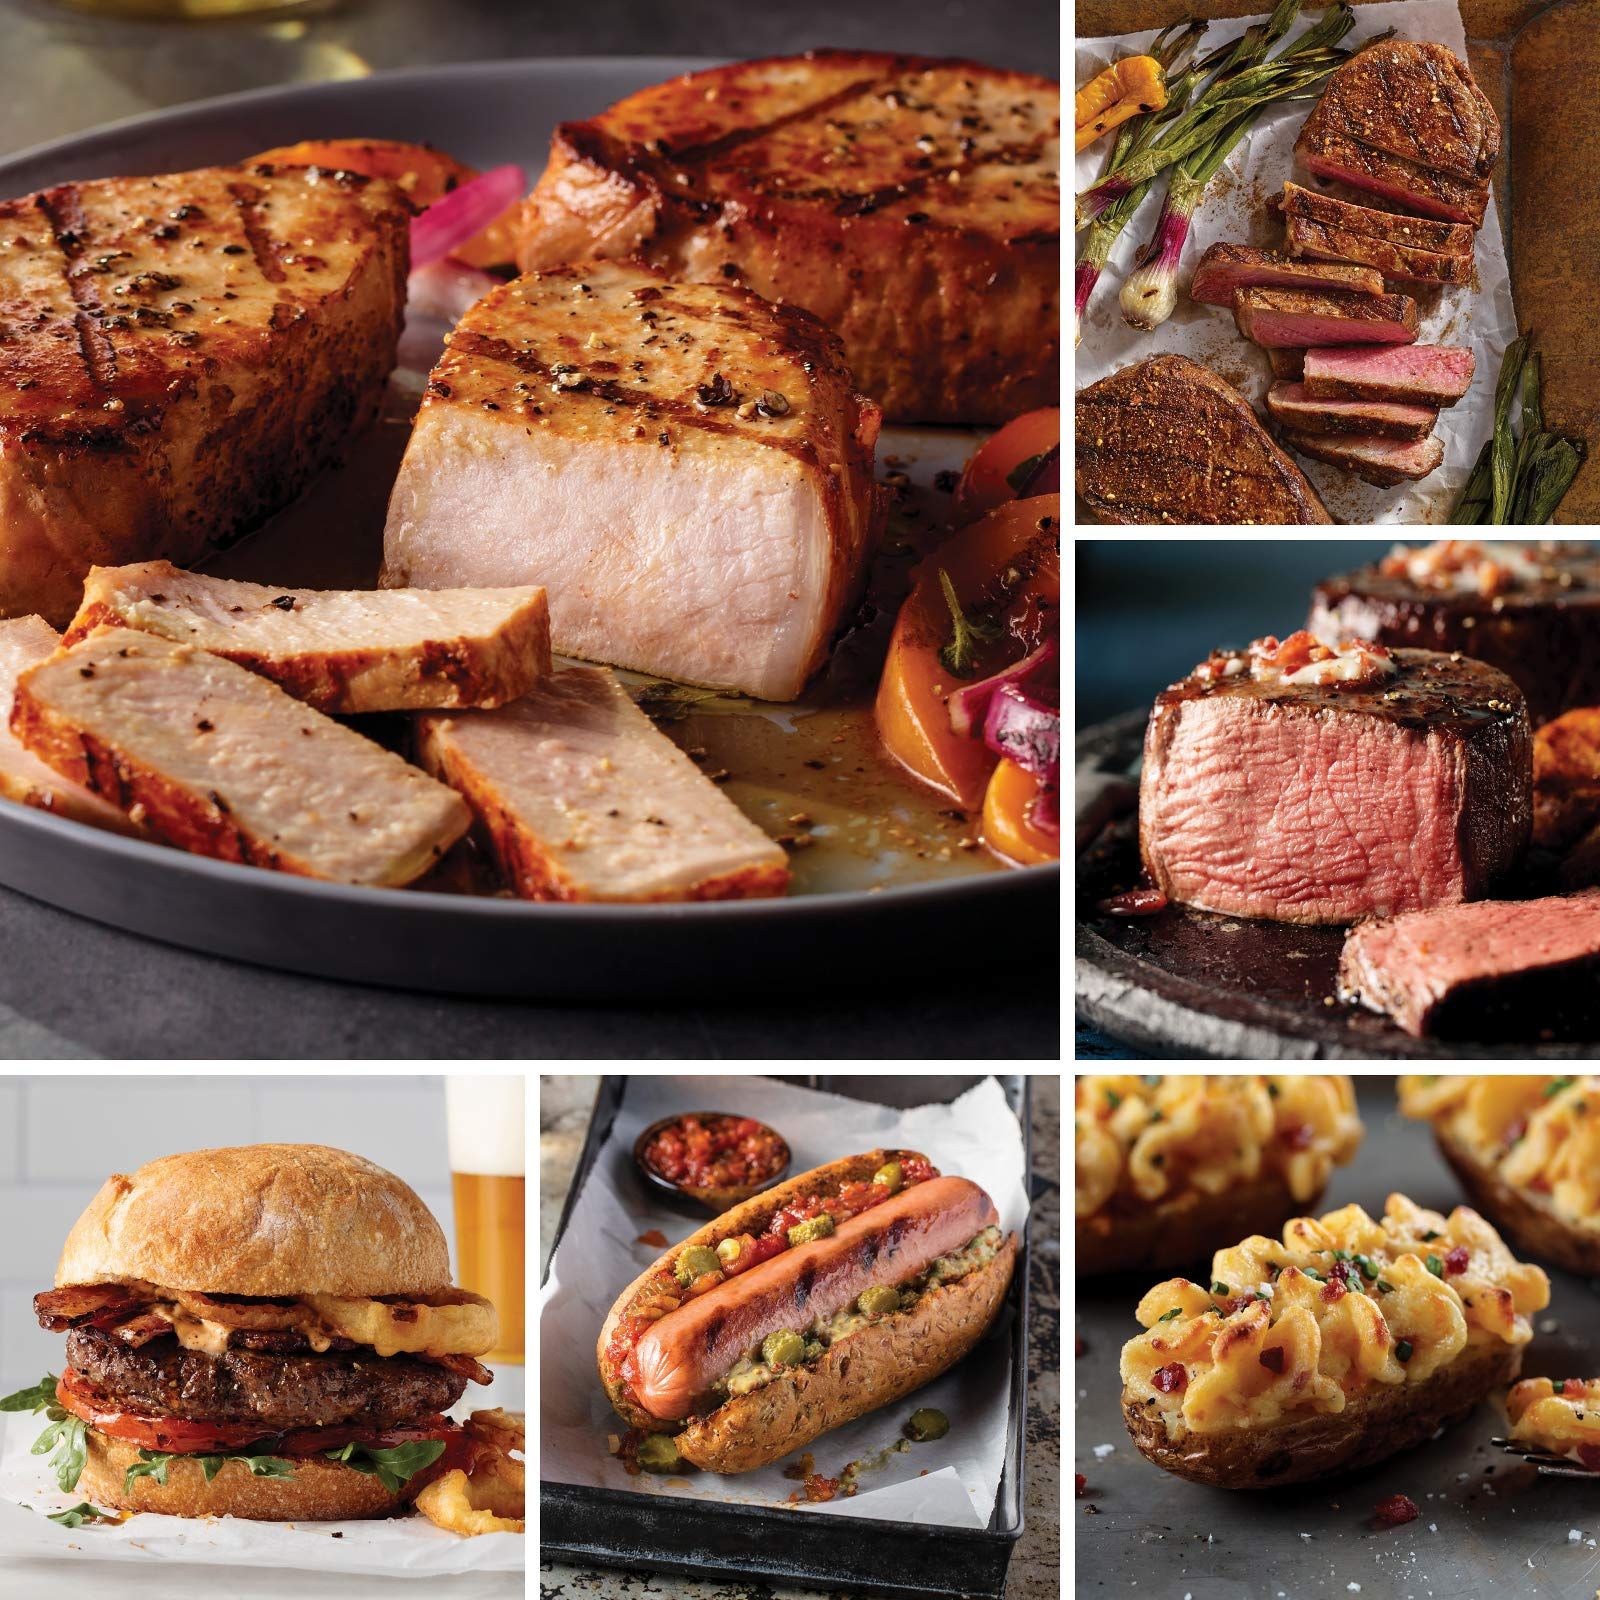 The Ultimate Man Gift from Omaha Steaks